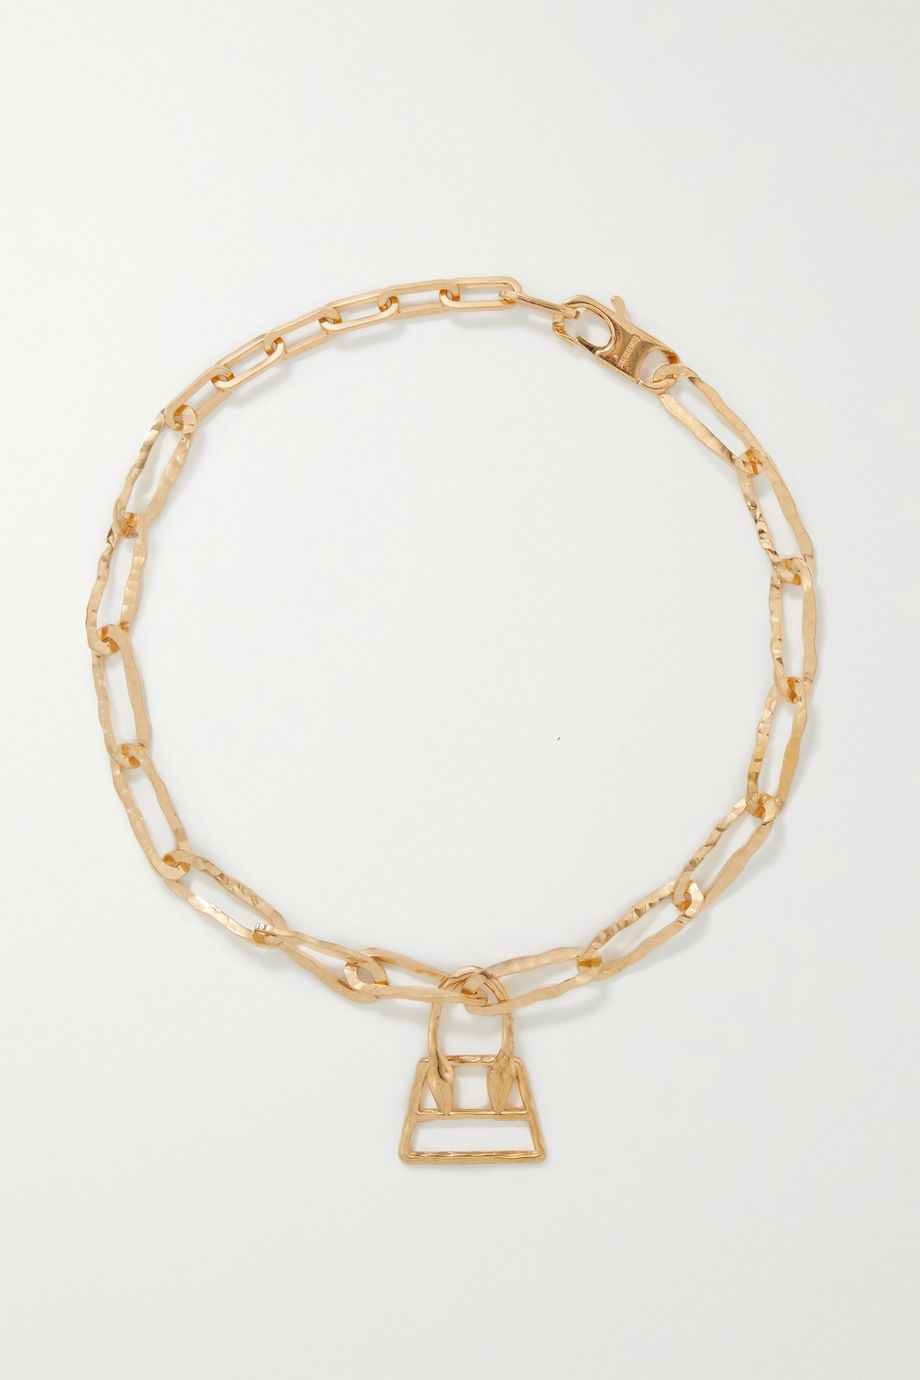 Jacquemus Le Chiquita hammered gold-tone necklace